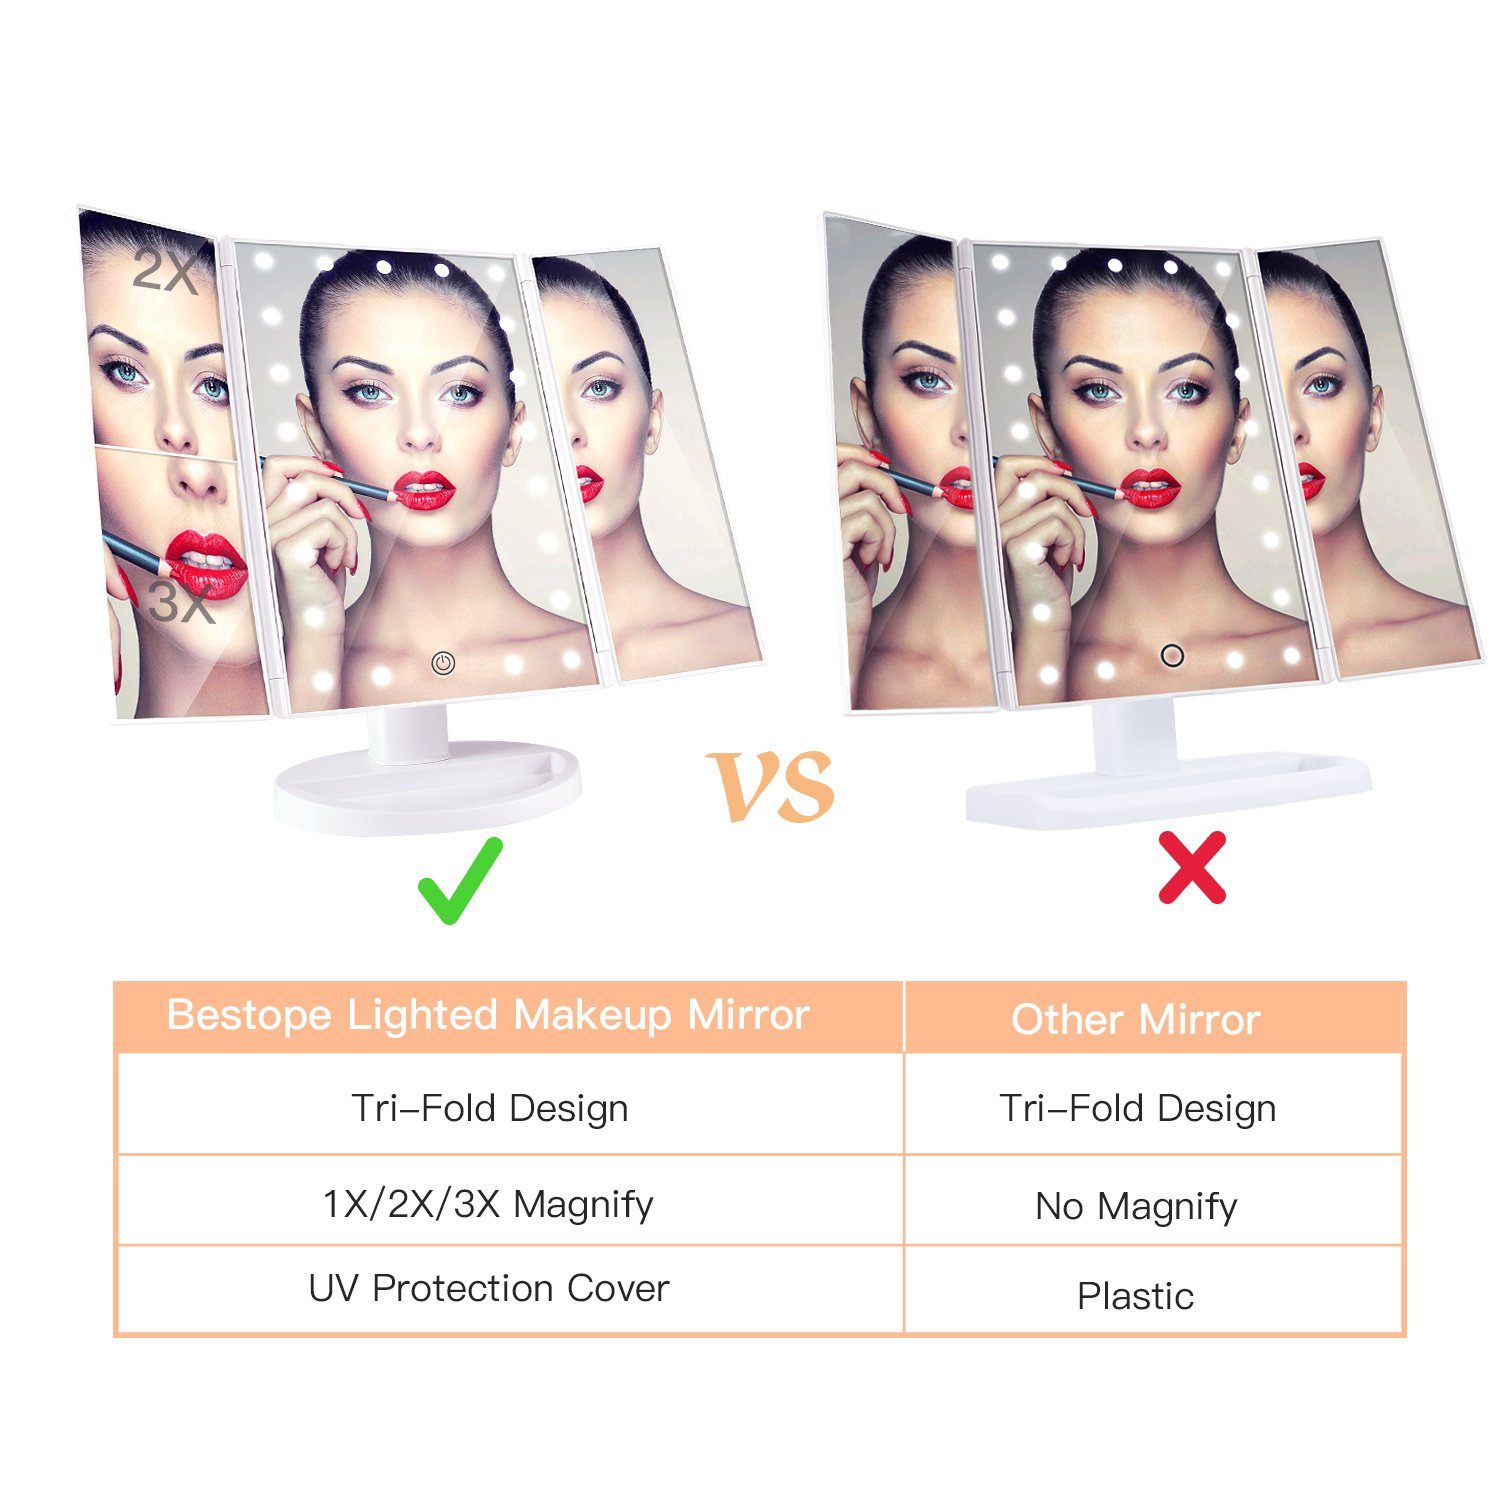 BESTOPE Makeup Vanity Mirror with 21 LED Lights 3X/2X Magnifying Touch Screen,Dual Power Supply,180° Adjustable Rotation,Countertop Cosmetic, 2 Pound by BESTOPE (Image #1)